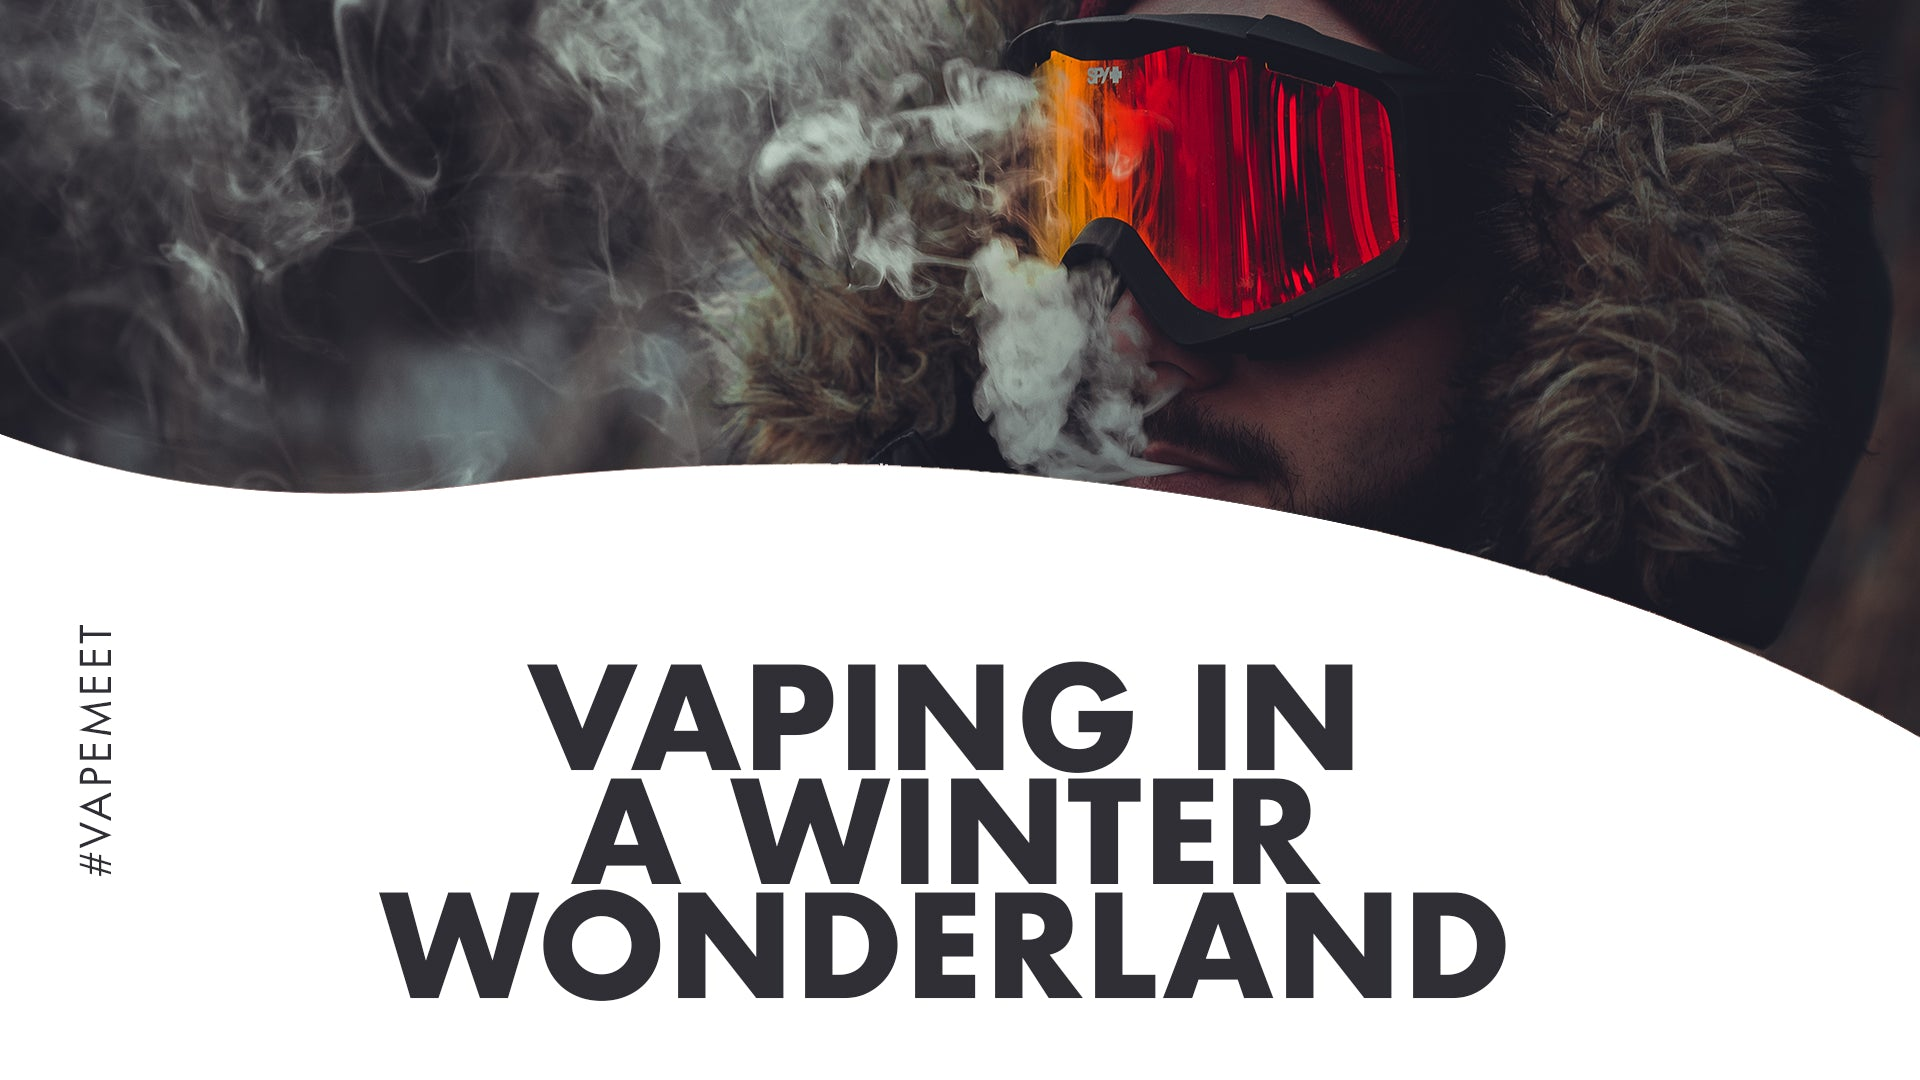 Vaping in a Winter Wonderland